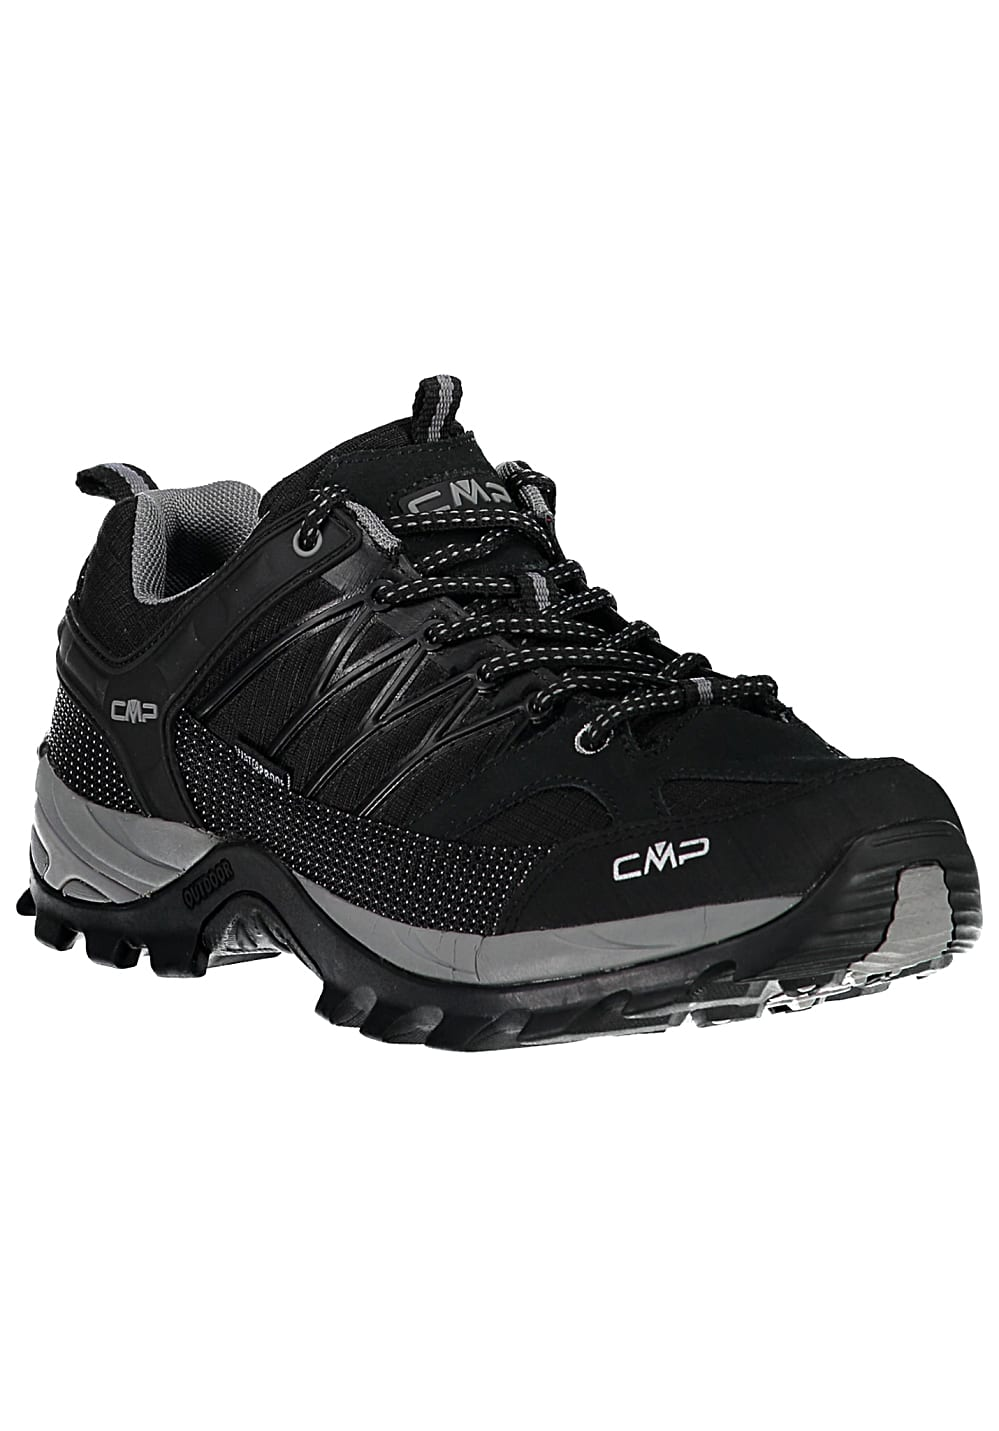 Grau Rigel Low Herren Cmp Planet Sports Wp Trekkingschuhe Für odreCxB